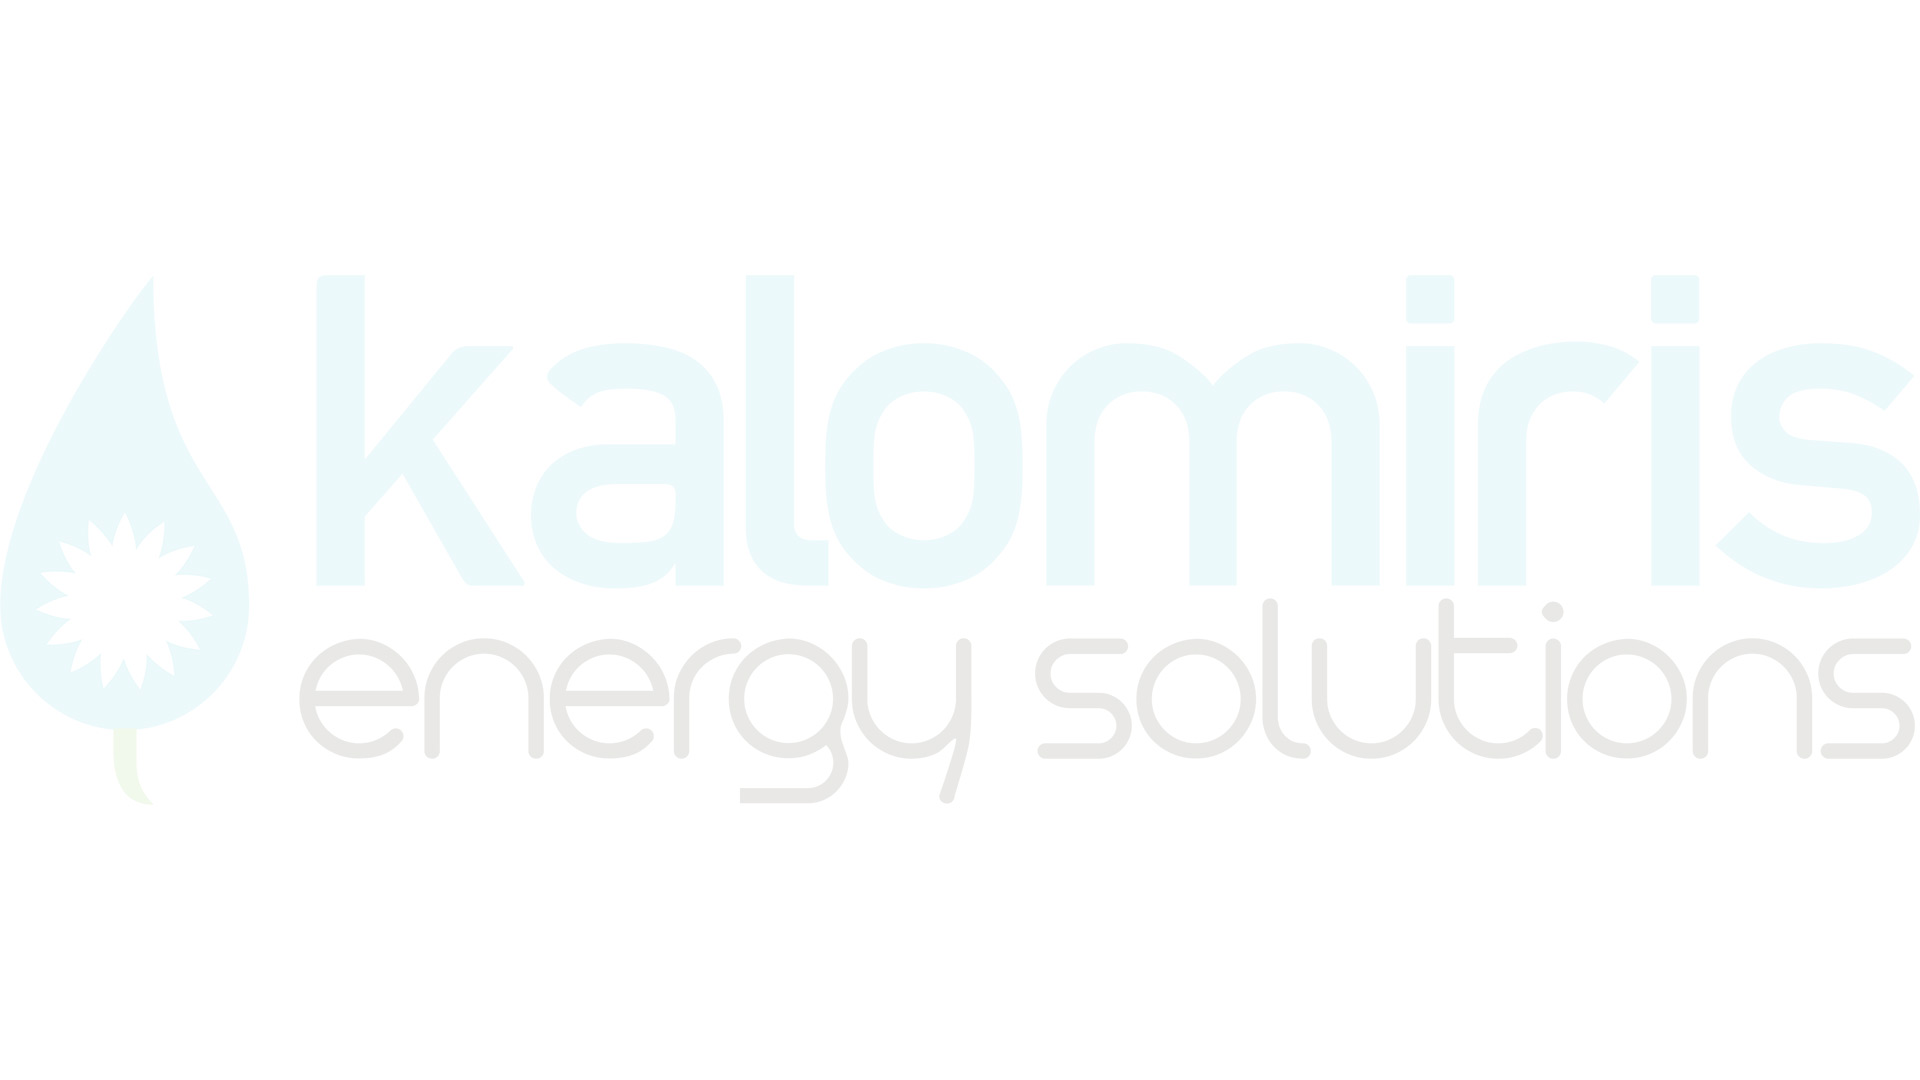 Ceiling Fan CASAFAN ECO NEO II 132 WE White / Light Grey 52 (132cm)